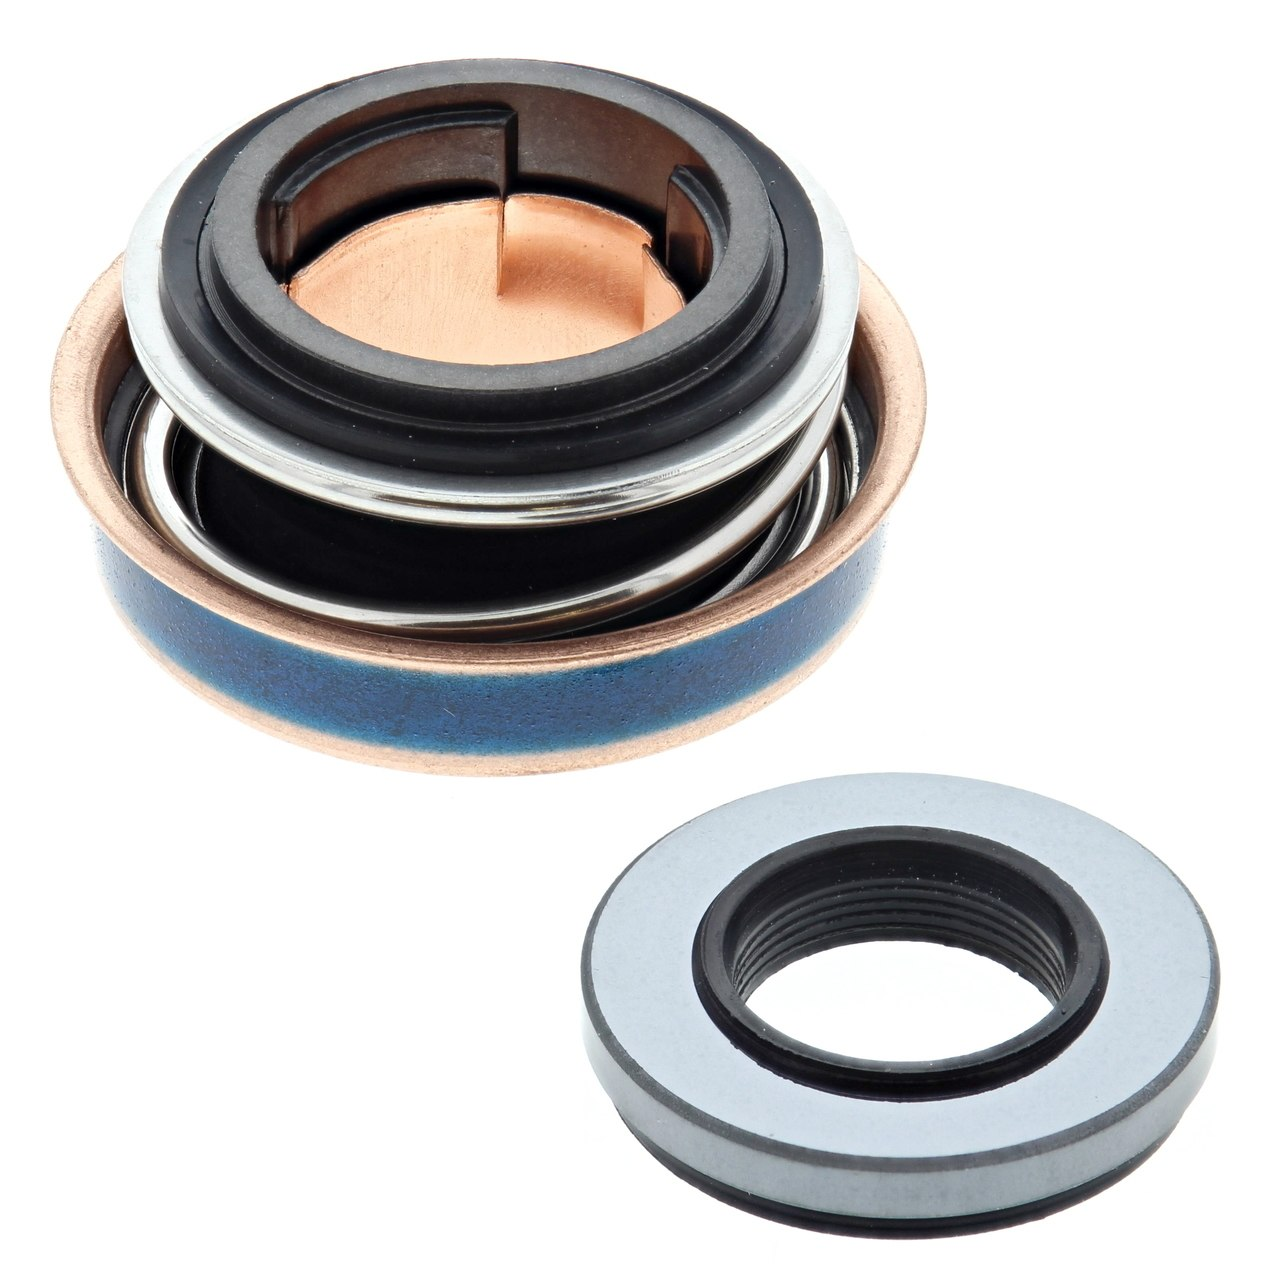 hight resolution of mechanical water pump seal polaris rzr 4 800 800cc 2010 2011 2012 2013 2014